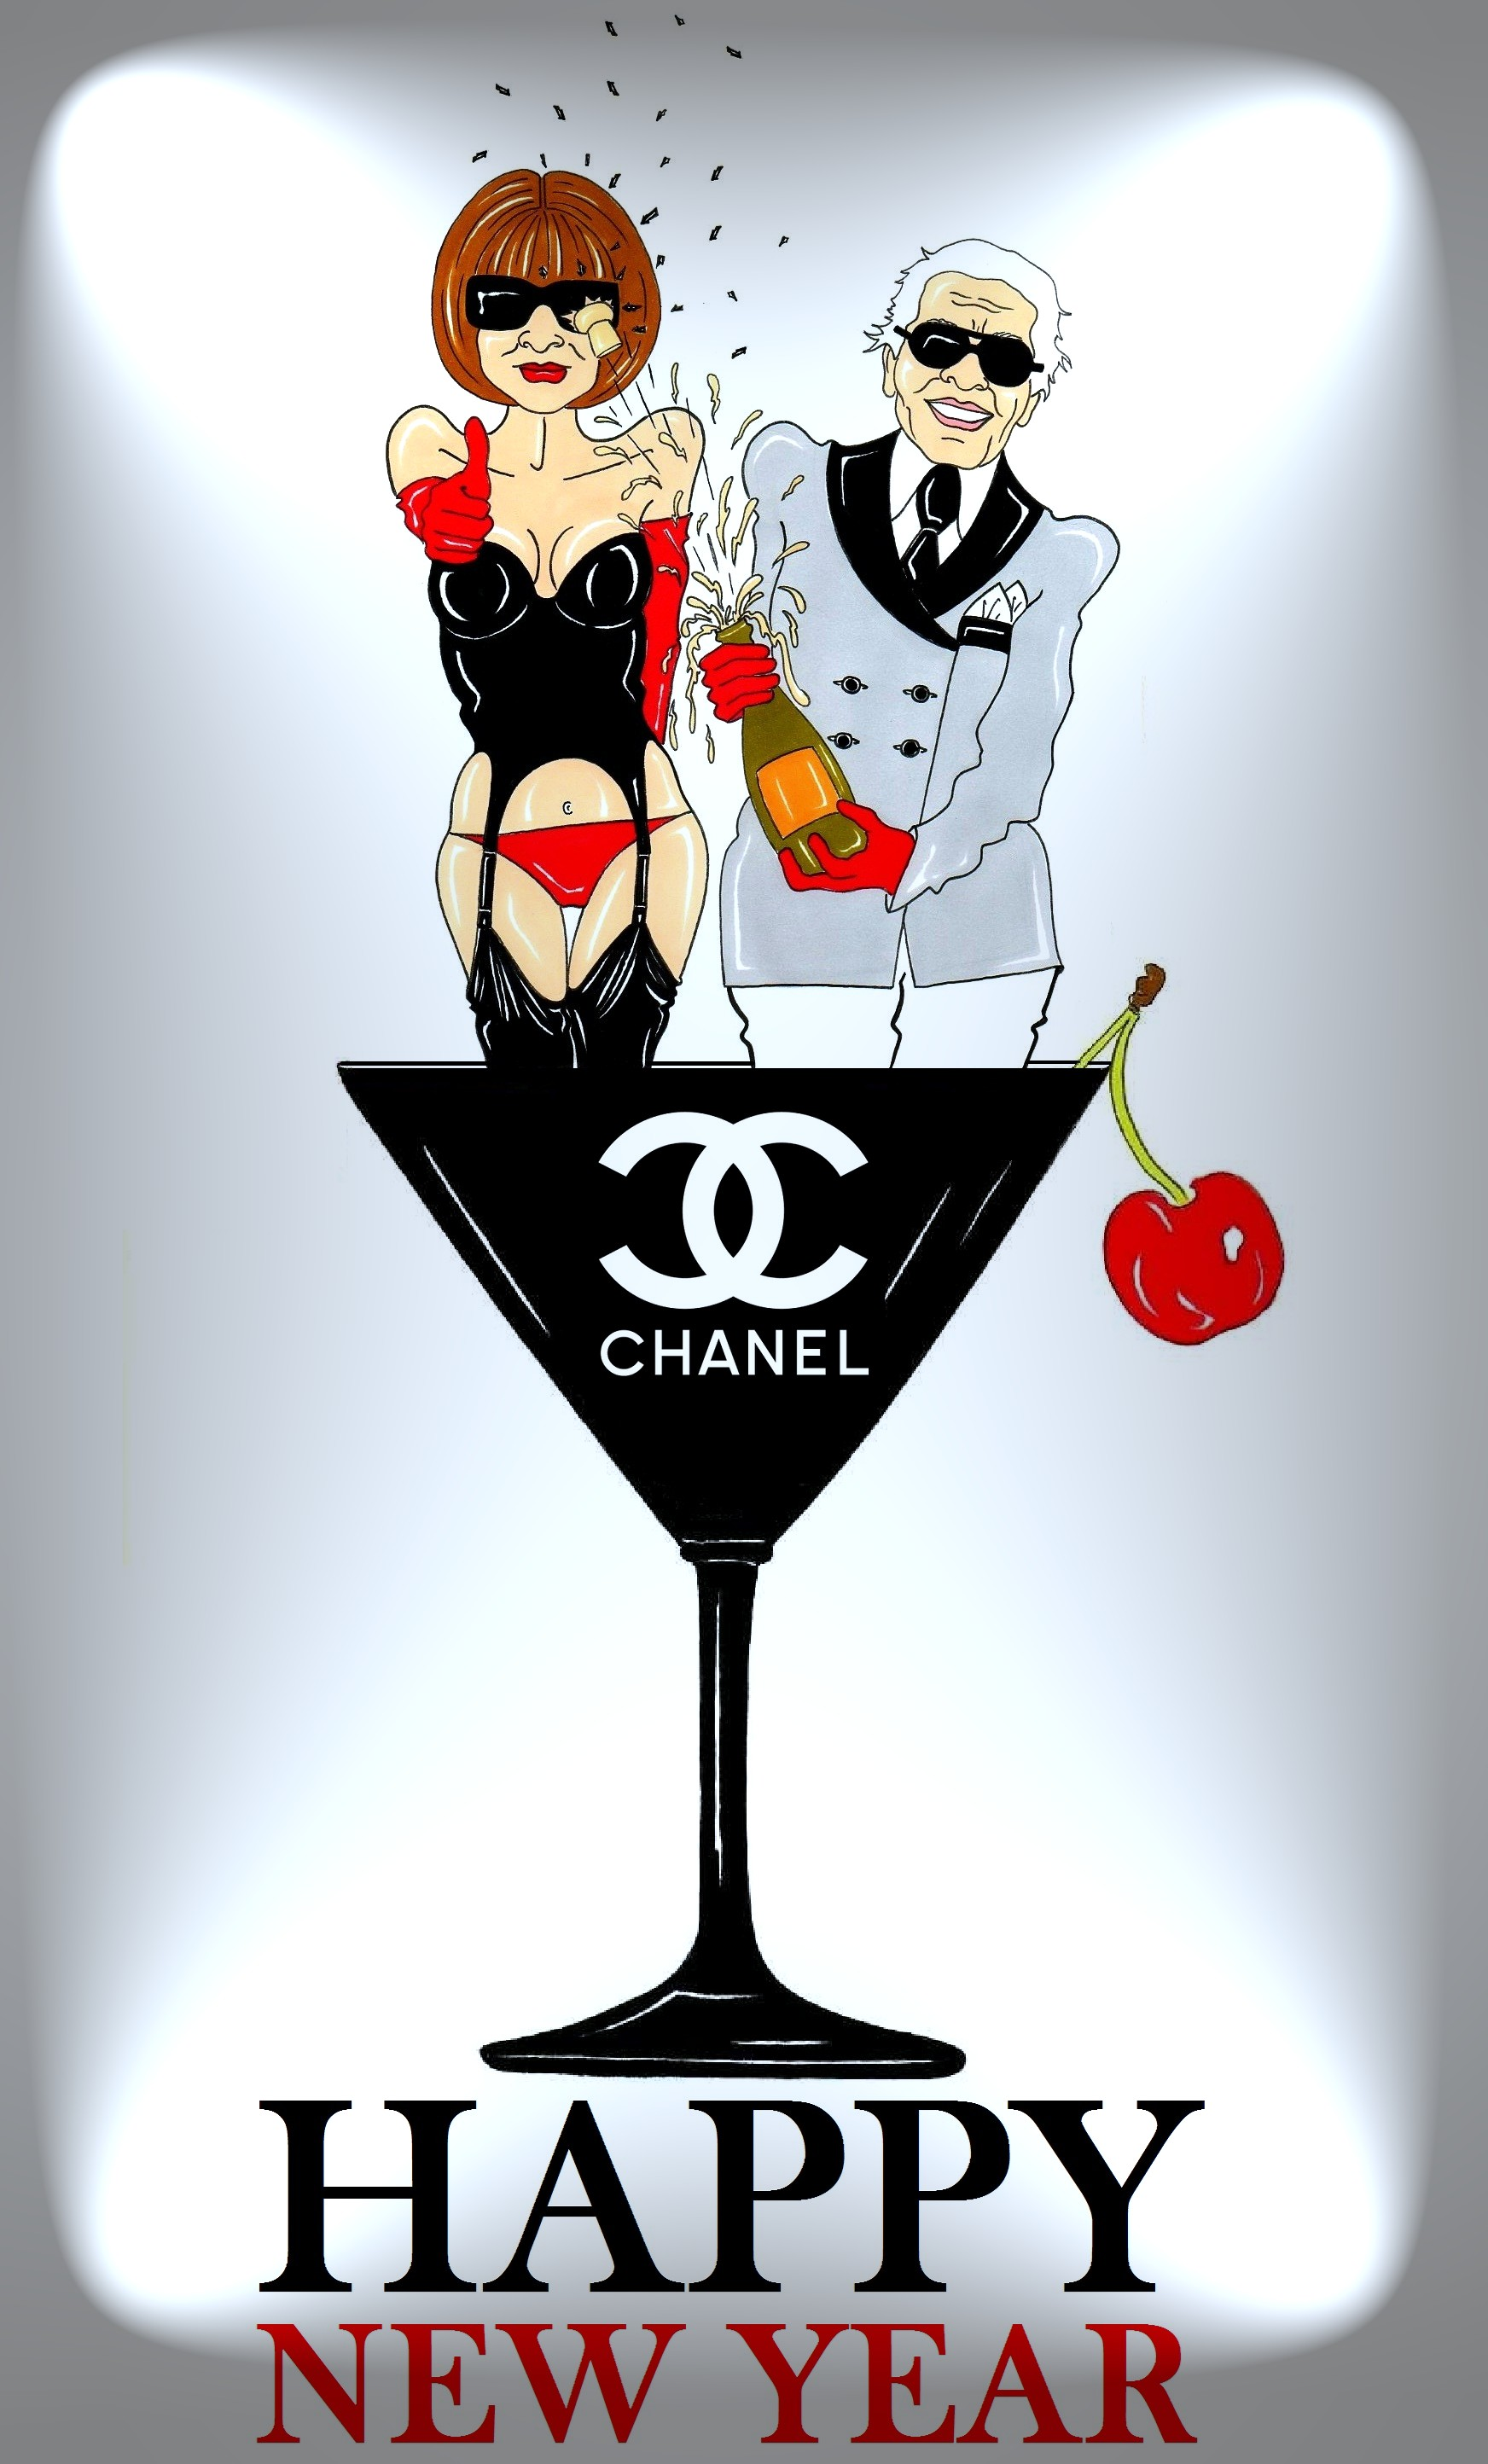 CHANEL Creeting Card Iconic Vogue Anna Wintour and Karl Lagerfeld Happy New Year Art Fashion Luxury Portrait Painting Cartoon Illustration Satire Sketch Icon Legend Humor Chic by aleXsandro Palombo